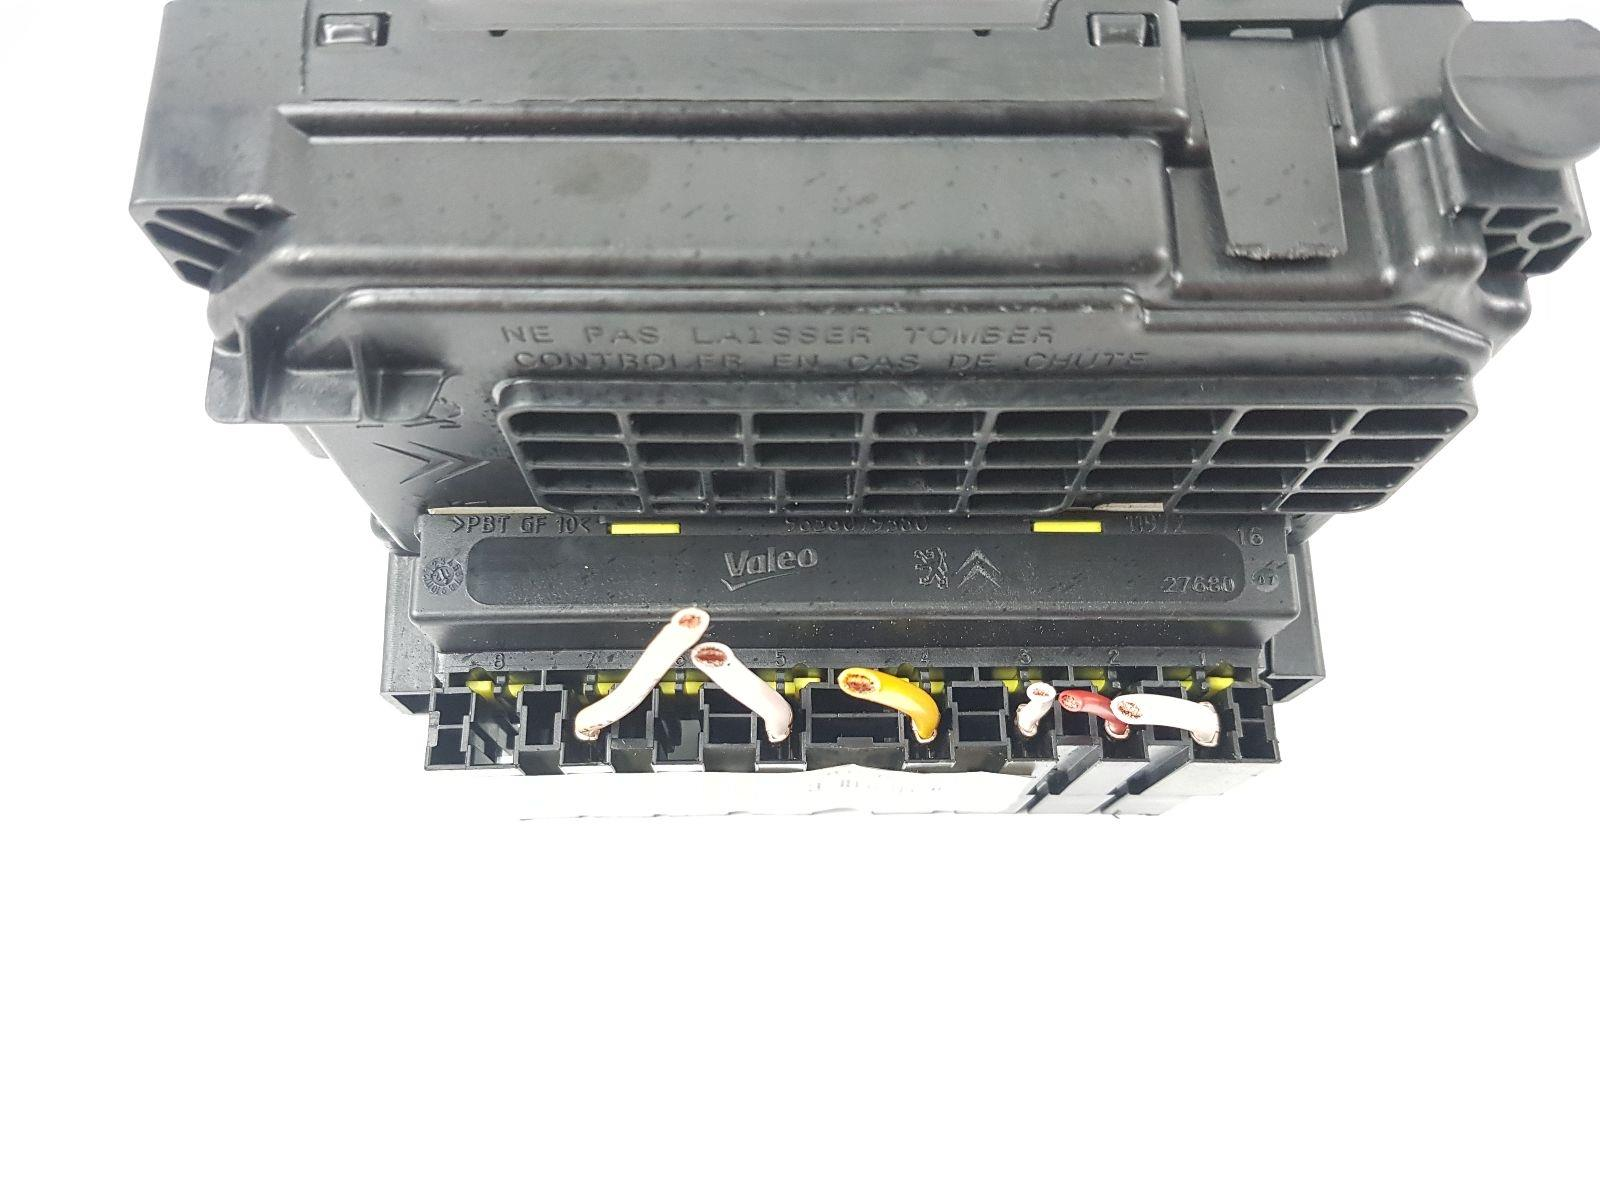 peugeot 207 fuse box for sale wiring diagrams Peugeot 207 2010 peugeot 207 2009 on fuse box (diesel manual) for sale from scb2009 on mk1